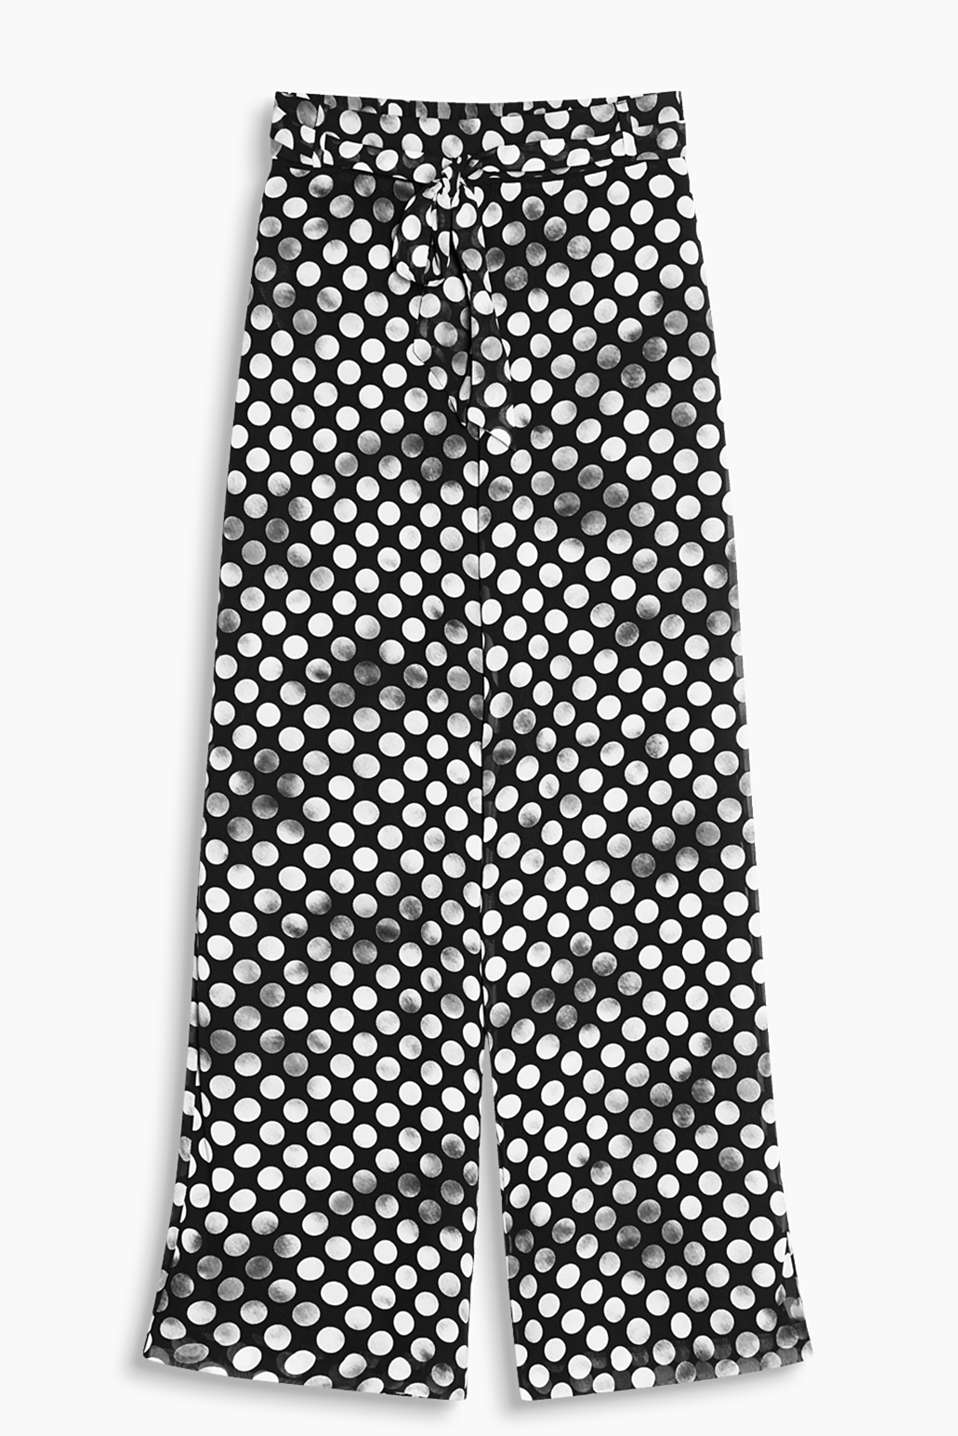 Wide leg chiffon trousers with an innovative polka dot pattern, semi-elasticated waistband and tie-around belt